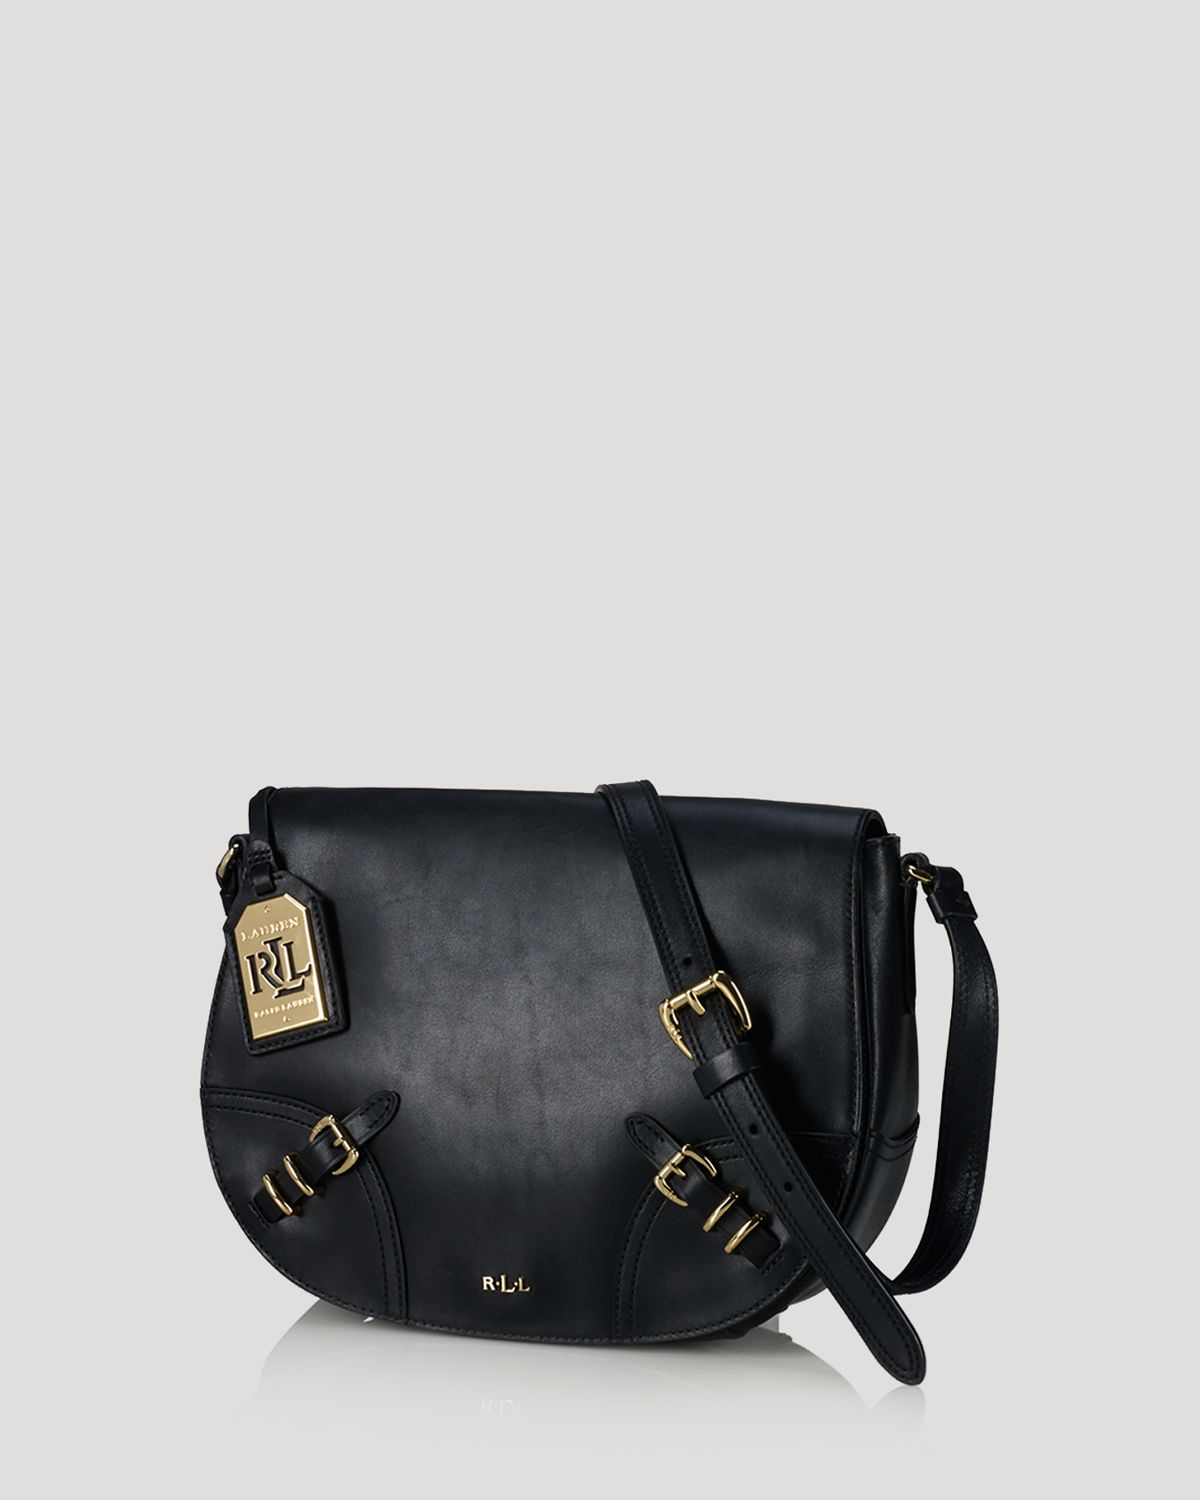 568af5b1a6 Lyst - Ralph Lauren Lauren Crossbody Lauren Saddle Bag in Black